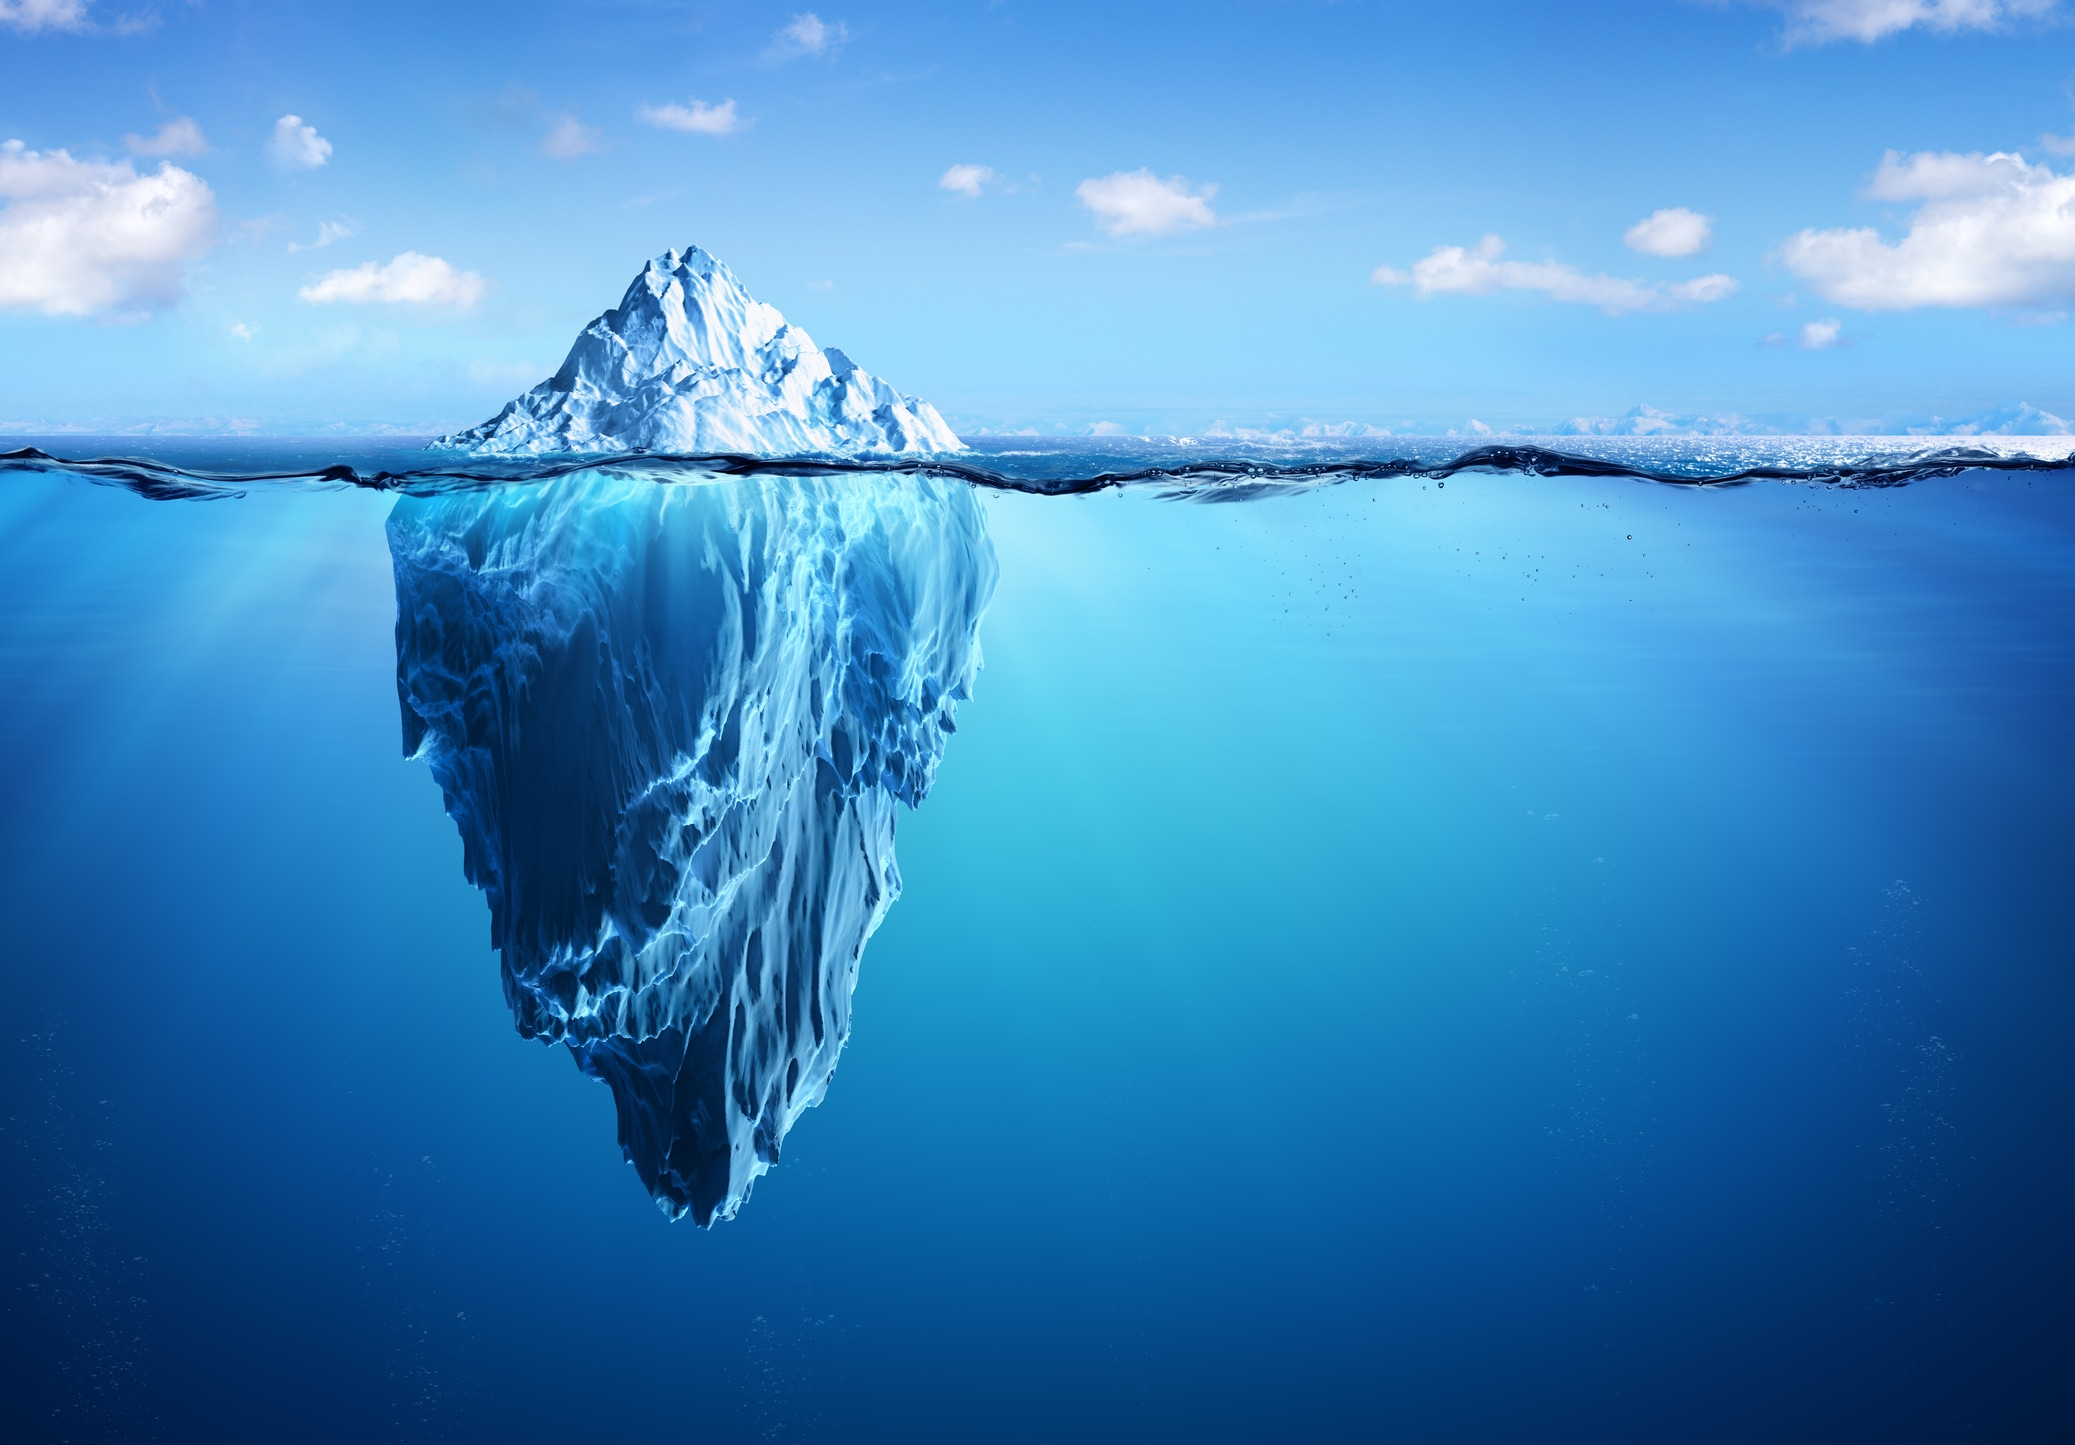 the iceberg theory for presentation content ethos the iceberg theory for presentation content